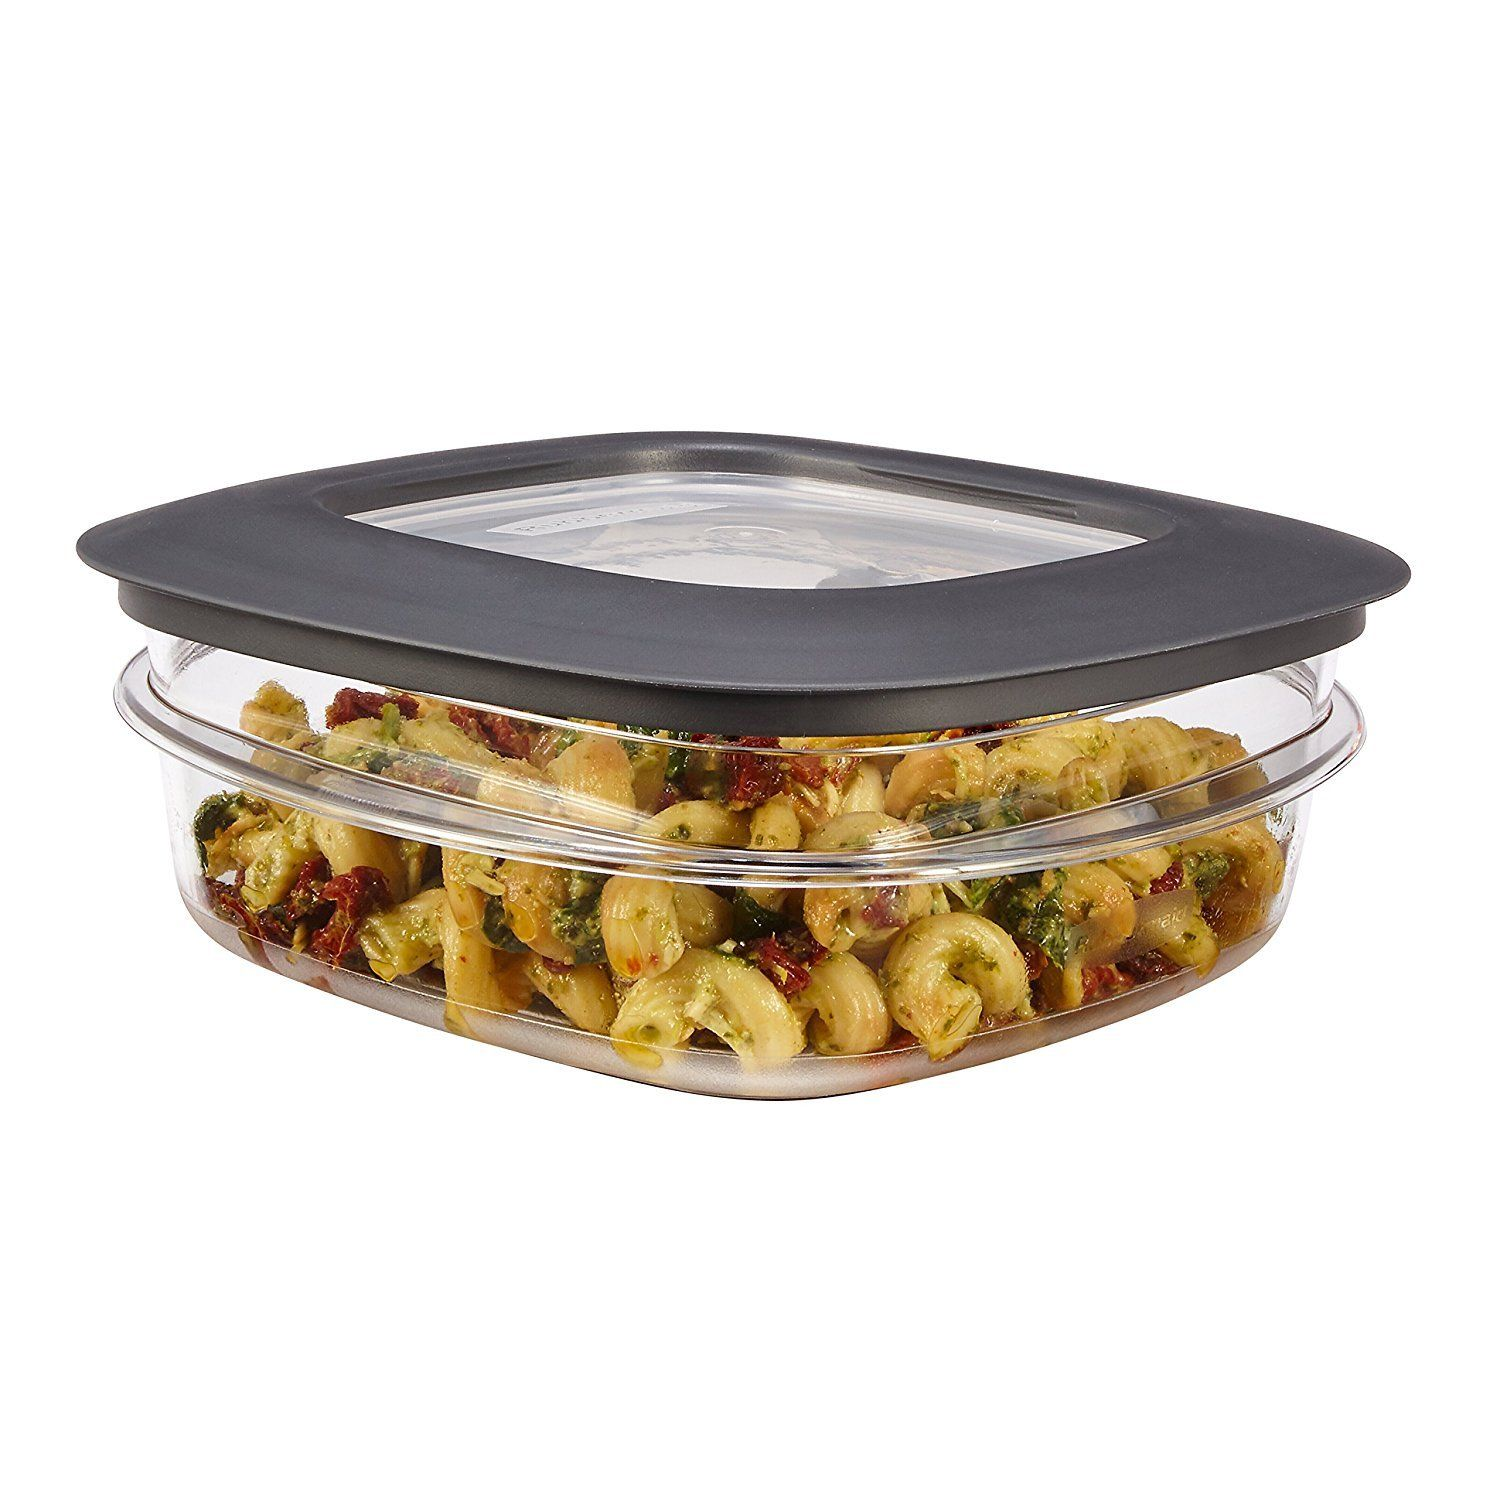 Rubbermaid 3 Cup Clear Premier Food Storage Container With Gray Lid (Pack of 1) 1